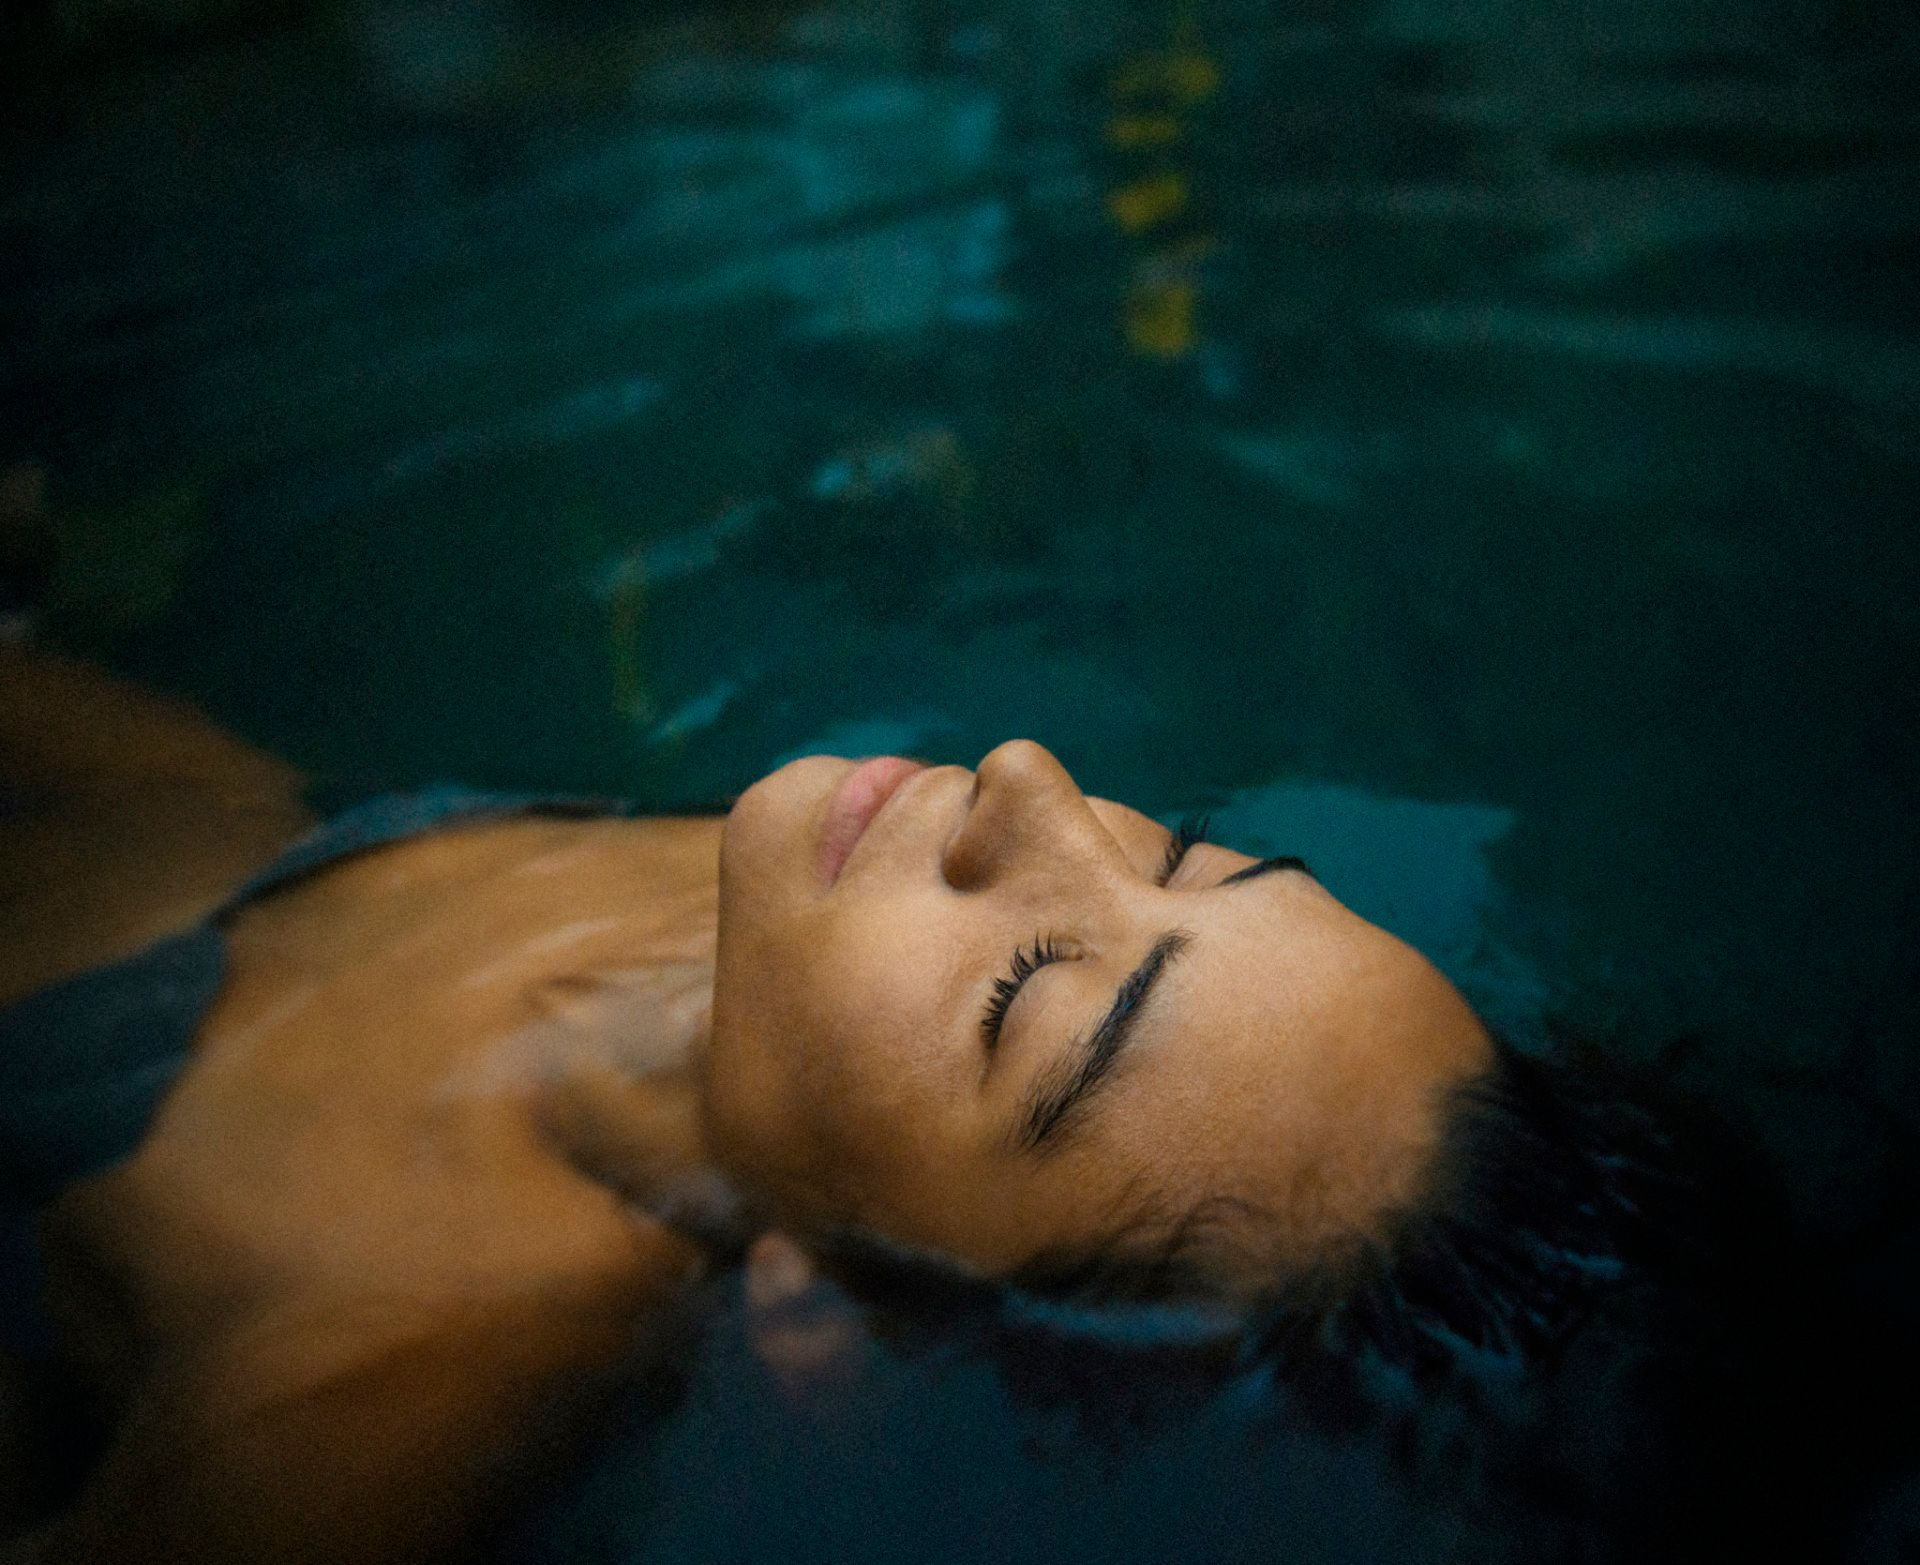 portrait of woman relaxing in outdoor hot spring, eyes closed, selective focus, soft evening light